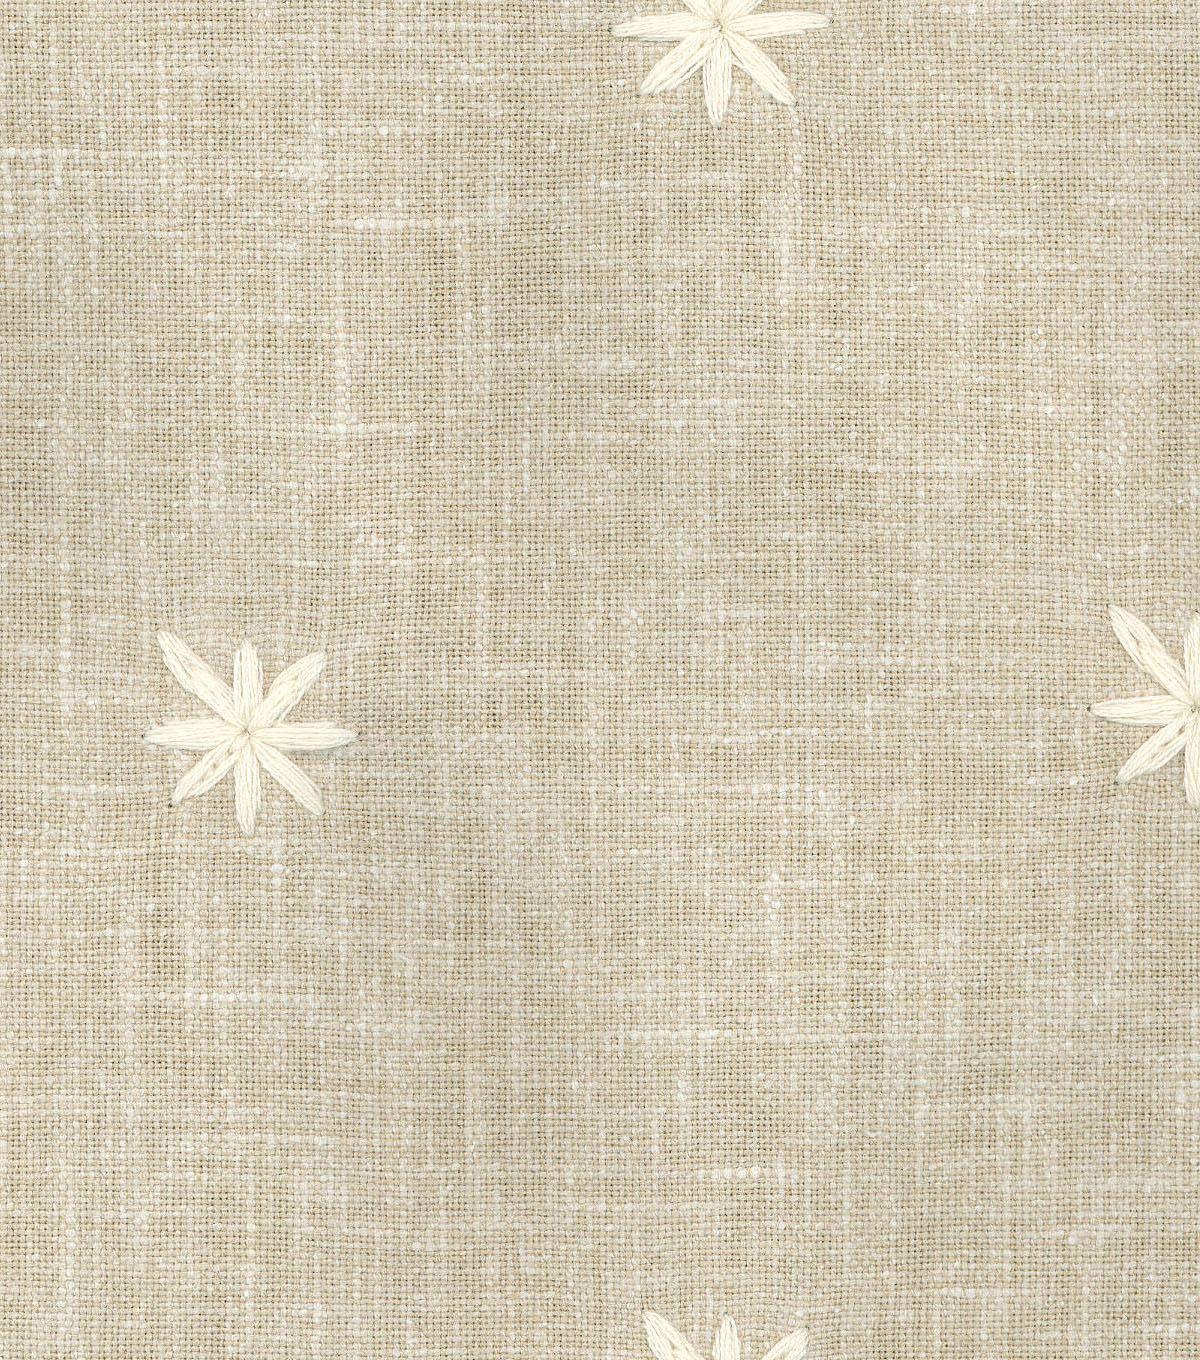 Ellen DeGeneres Multi-Purpose Décor Fabric 54\u0027\u0027-Parchment Sunset Embroidery